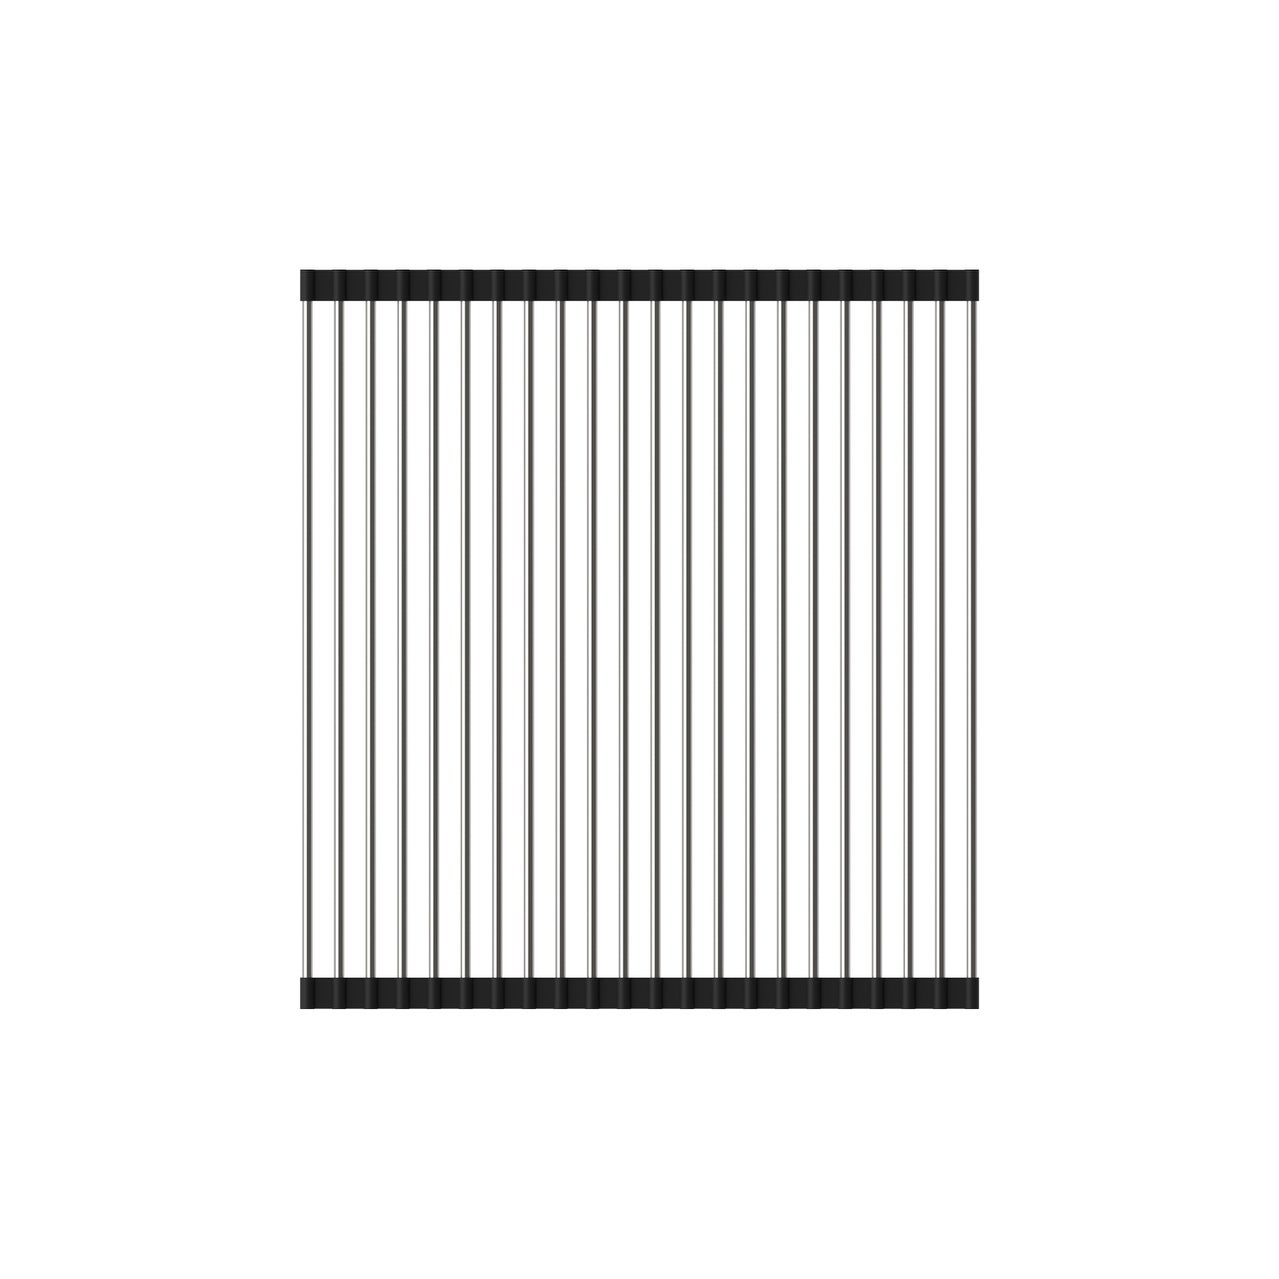 15 X 17 Stainless Steel Roll Up Sink Grid Overstock 27963490